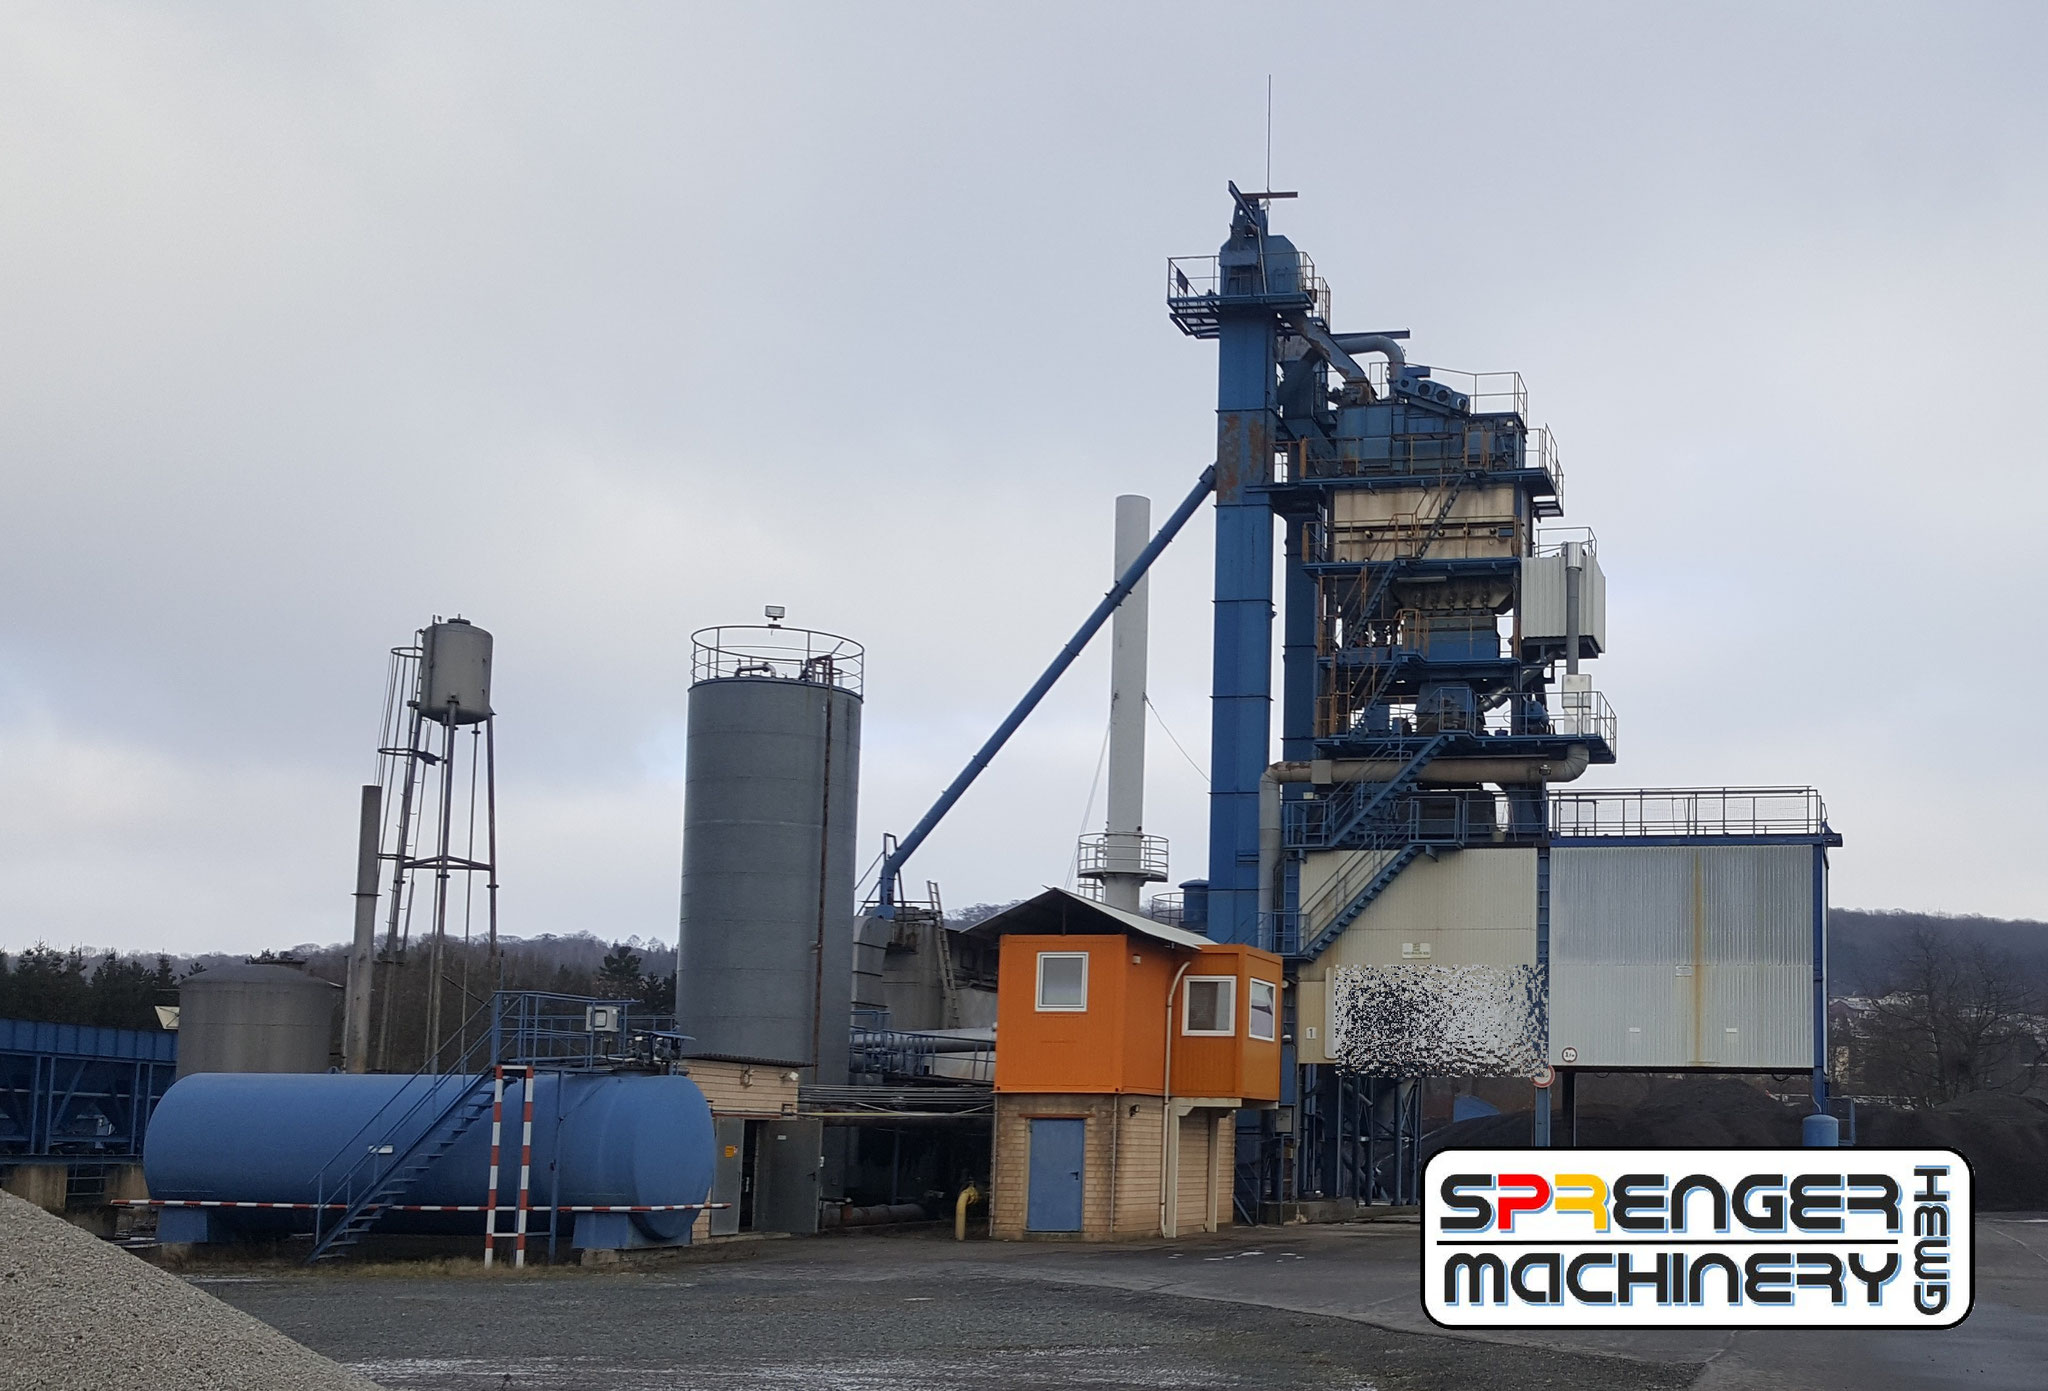 successful sale and project organization of an asphalt mixing plant from Germany to Pakistan